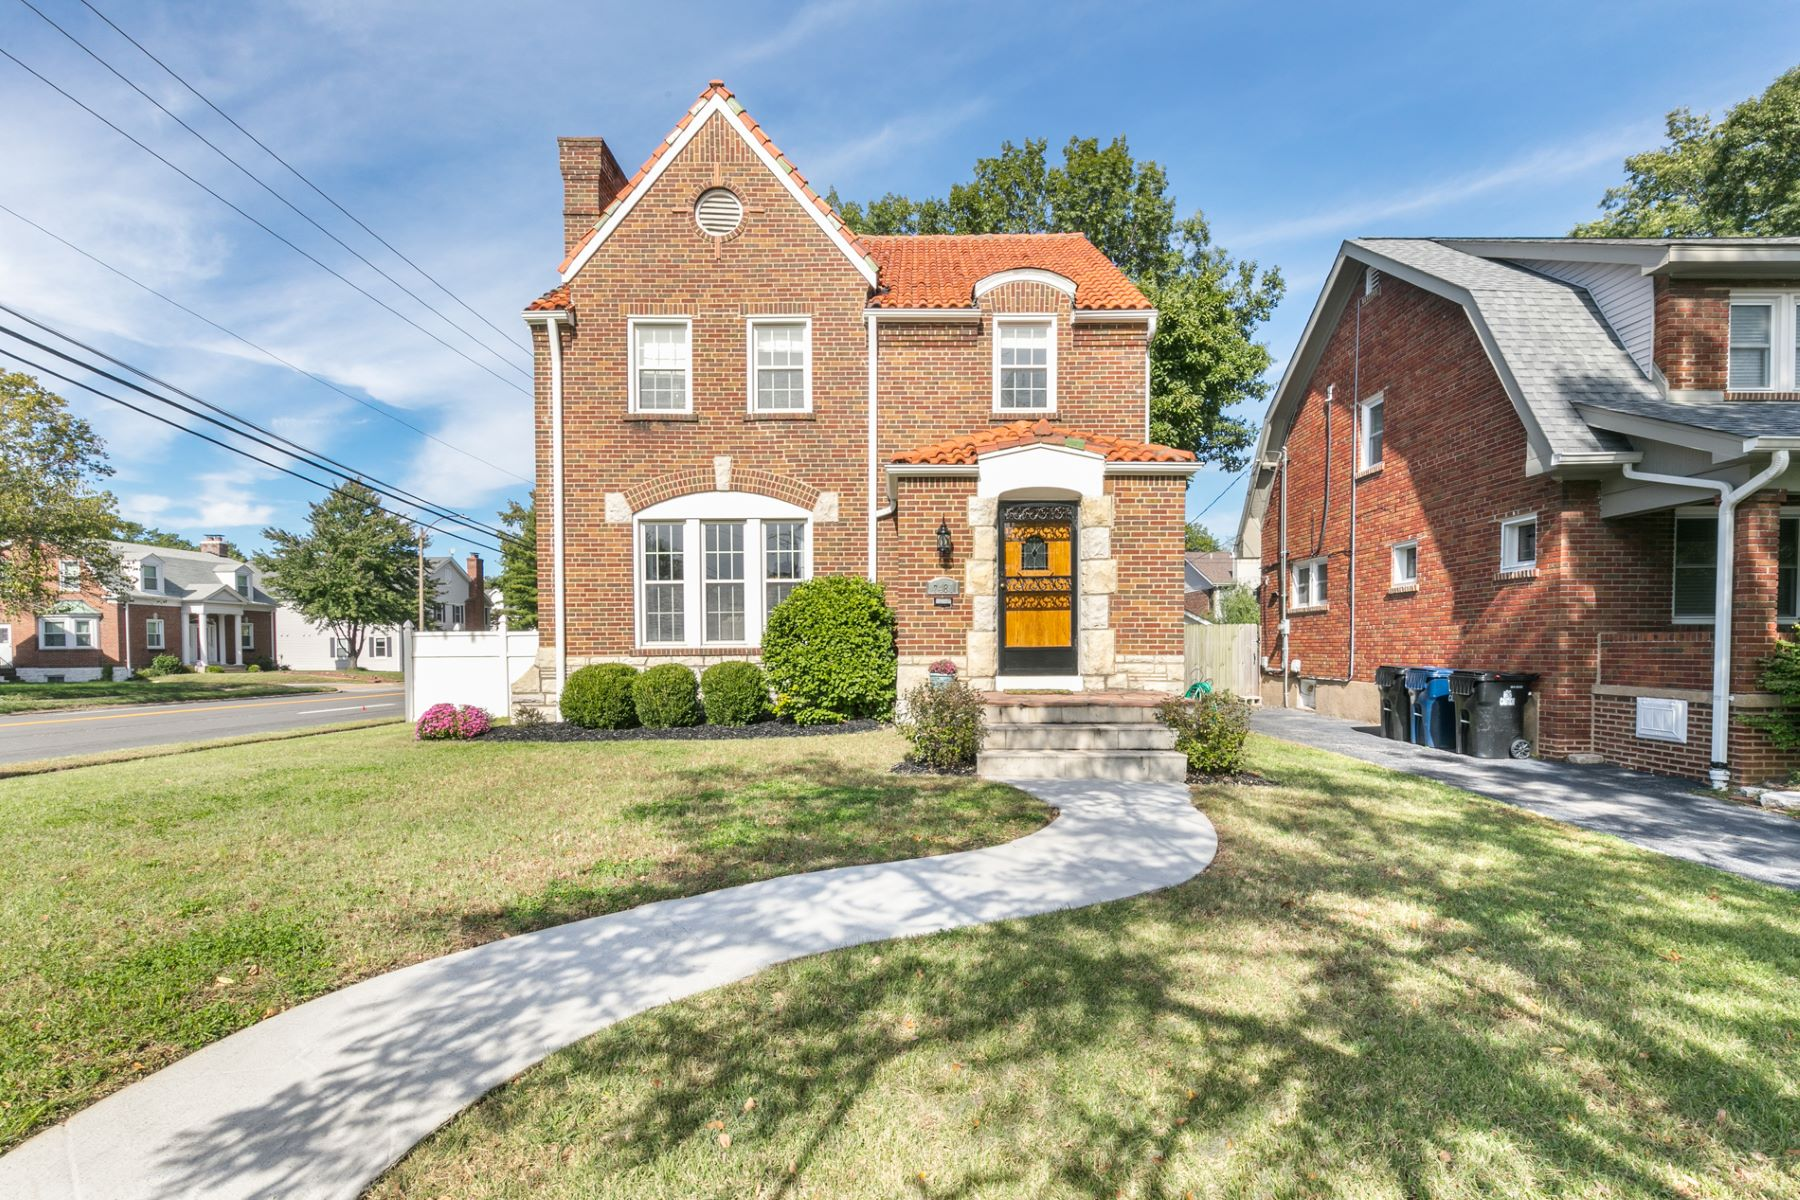 Single Family Home for Sale at Cornell Ave 7481 Cornell Ave University City, Missouri 63130 United States